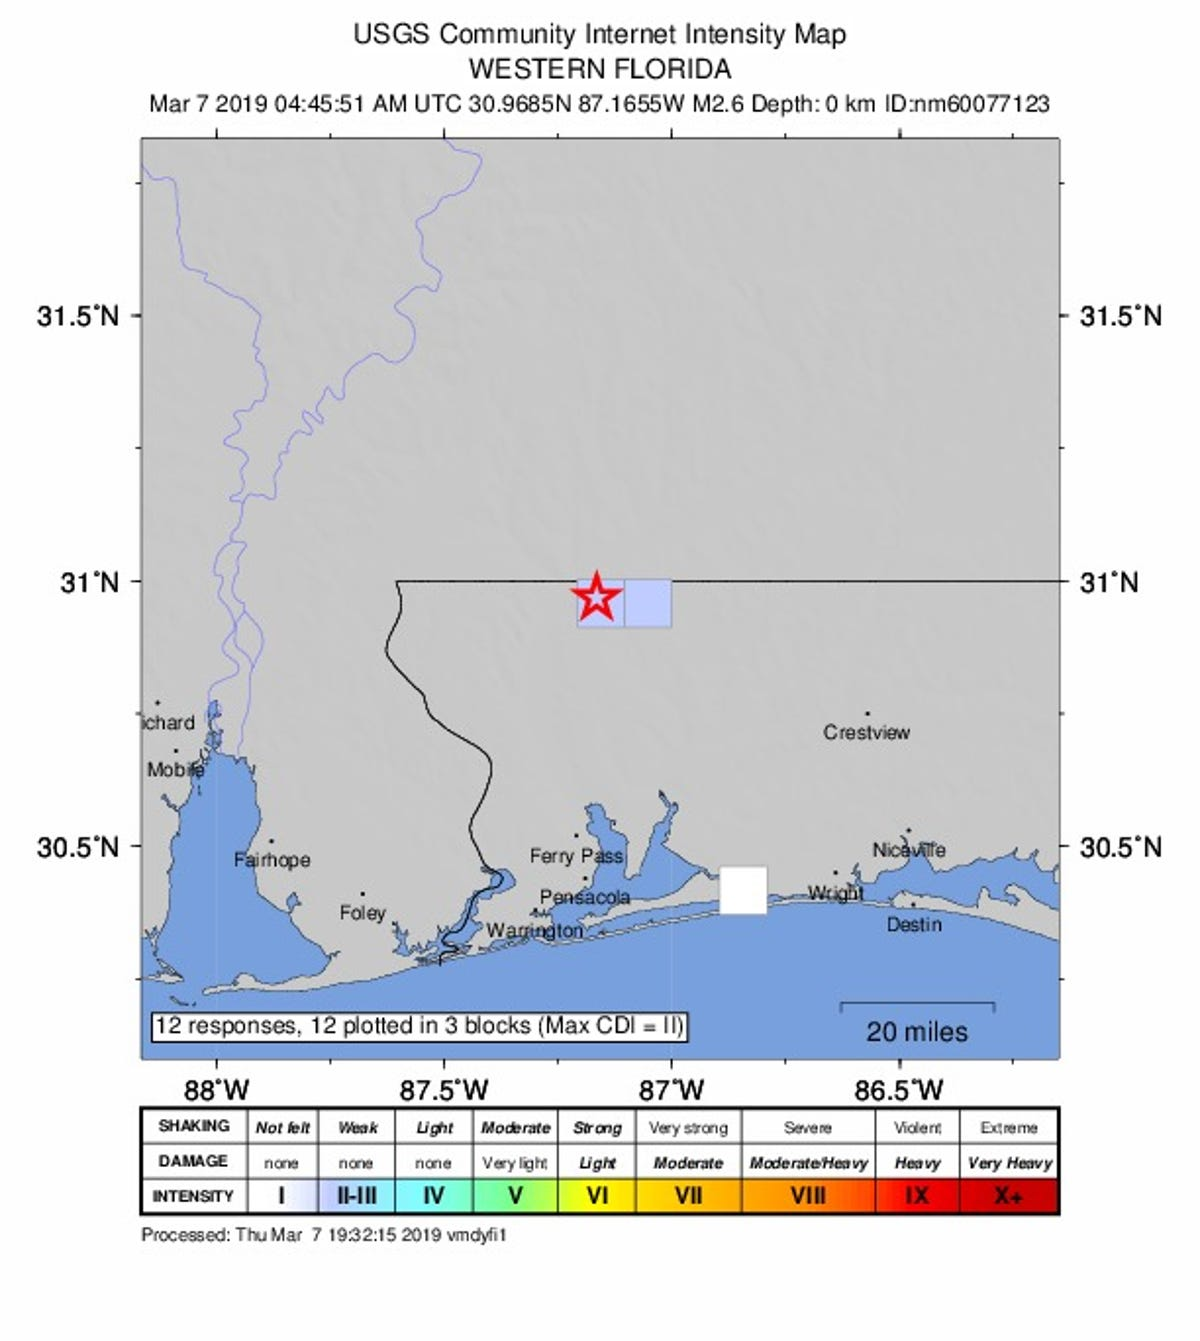 Third Earthquake Reported Near Florida Alabama Line Rumble On